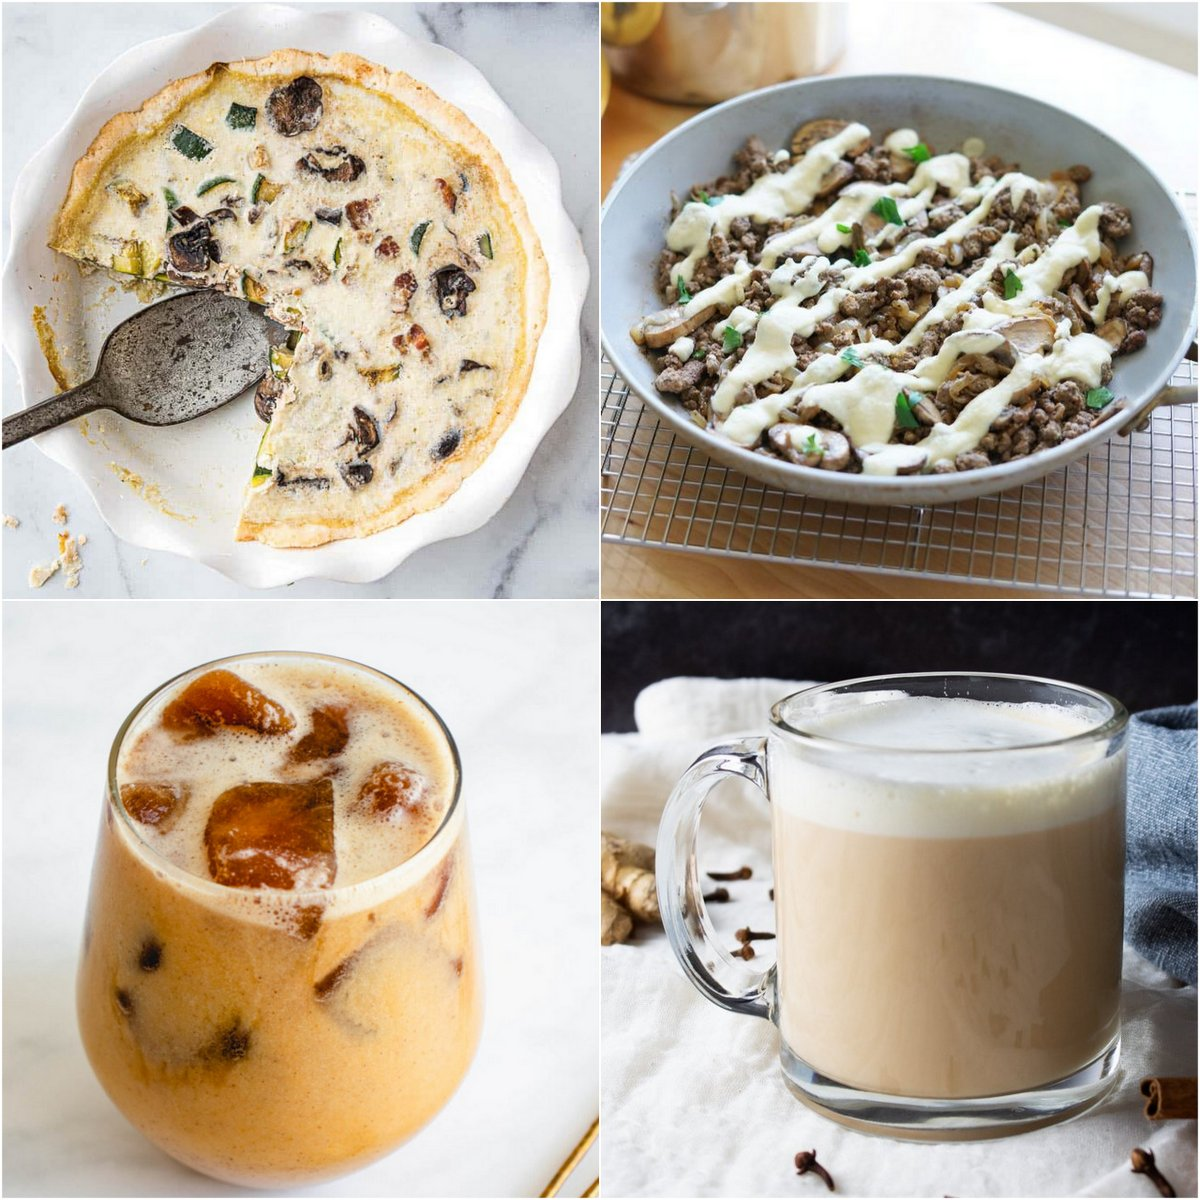 Paleo AIP Recipe Roundtable #387 | Phoenix Helix - *Featured Recipes: Bacon and Onion Eggless Quiche, Philly Cheesesteak Skillet, Pumpkin Cold Brew, and Easy Chai Tea Latte Concentrate.